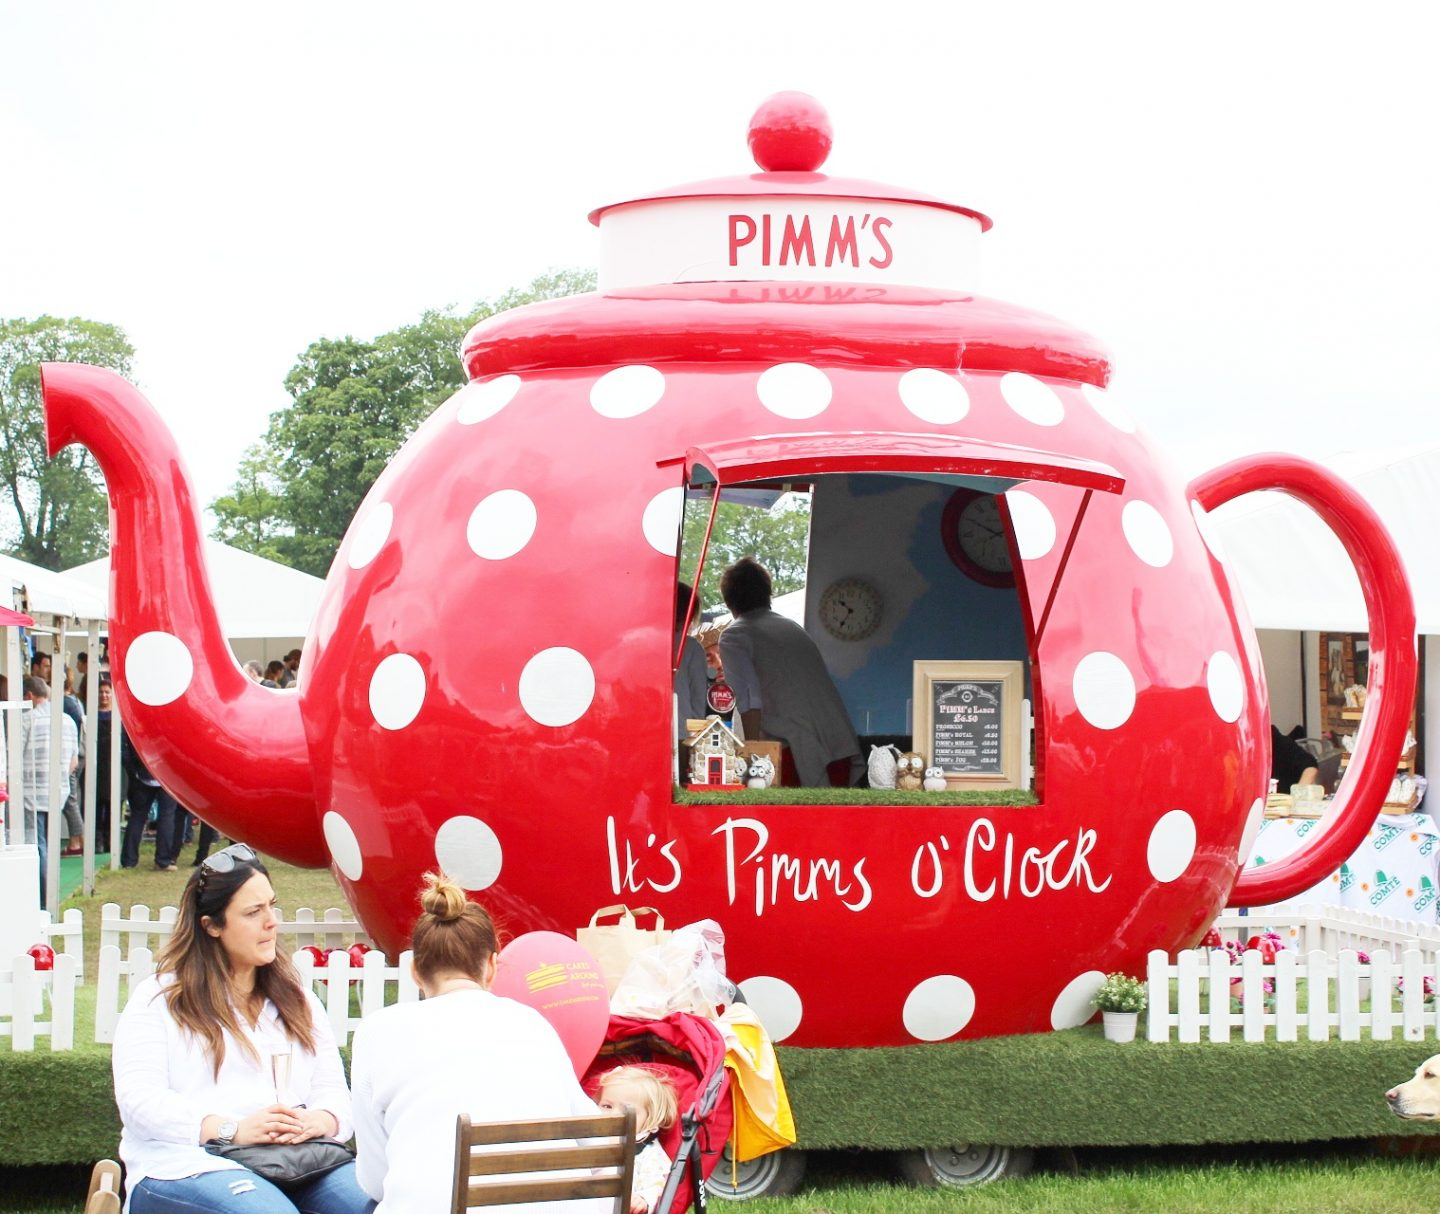 Edinburgh Foodie Festival with Pimm's